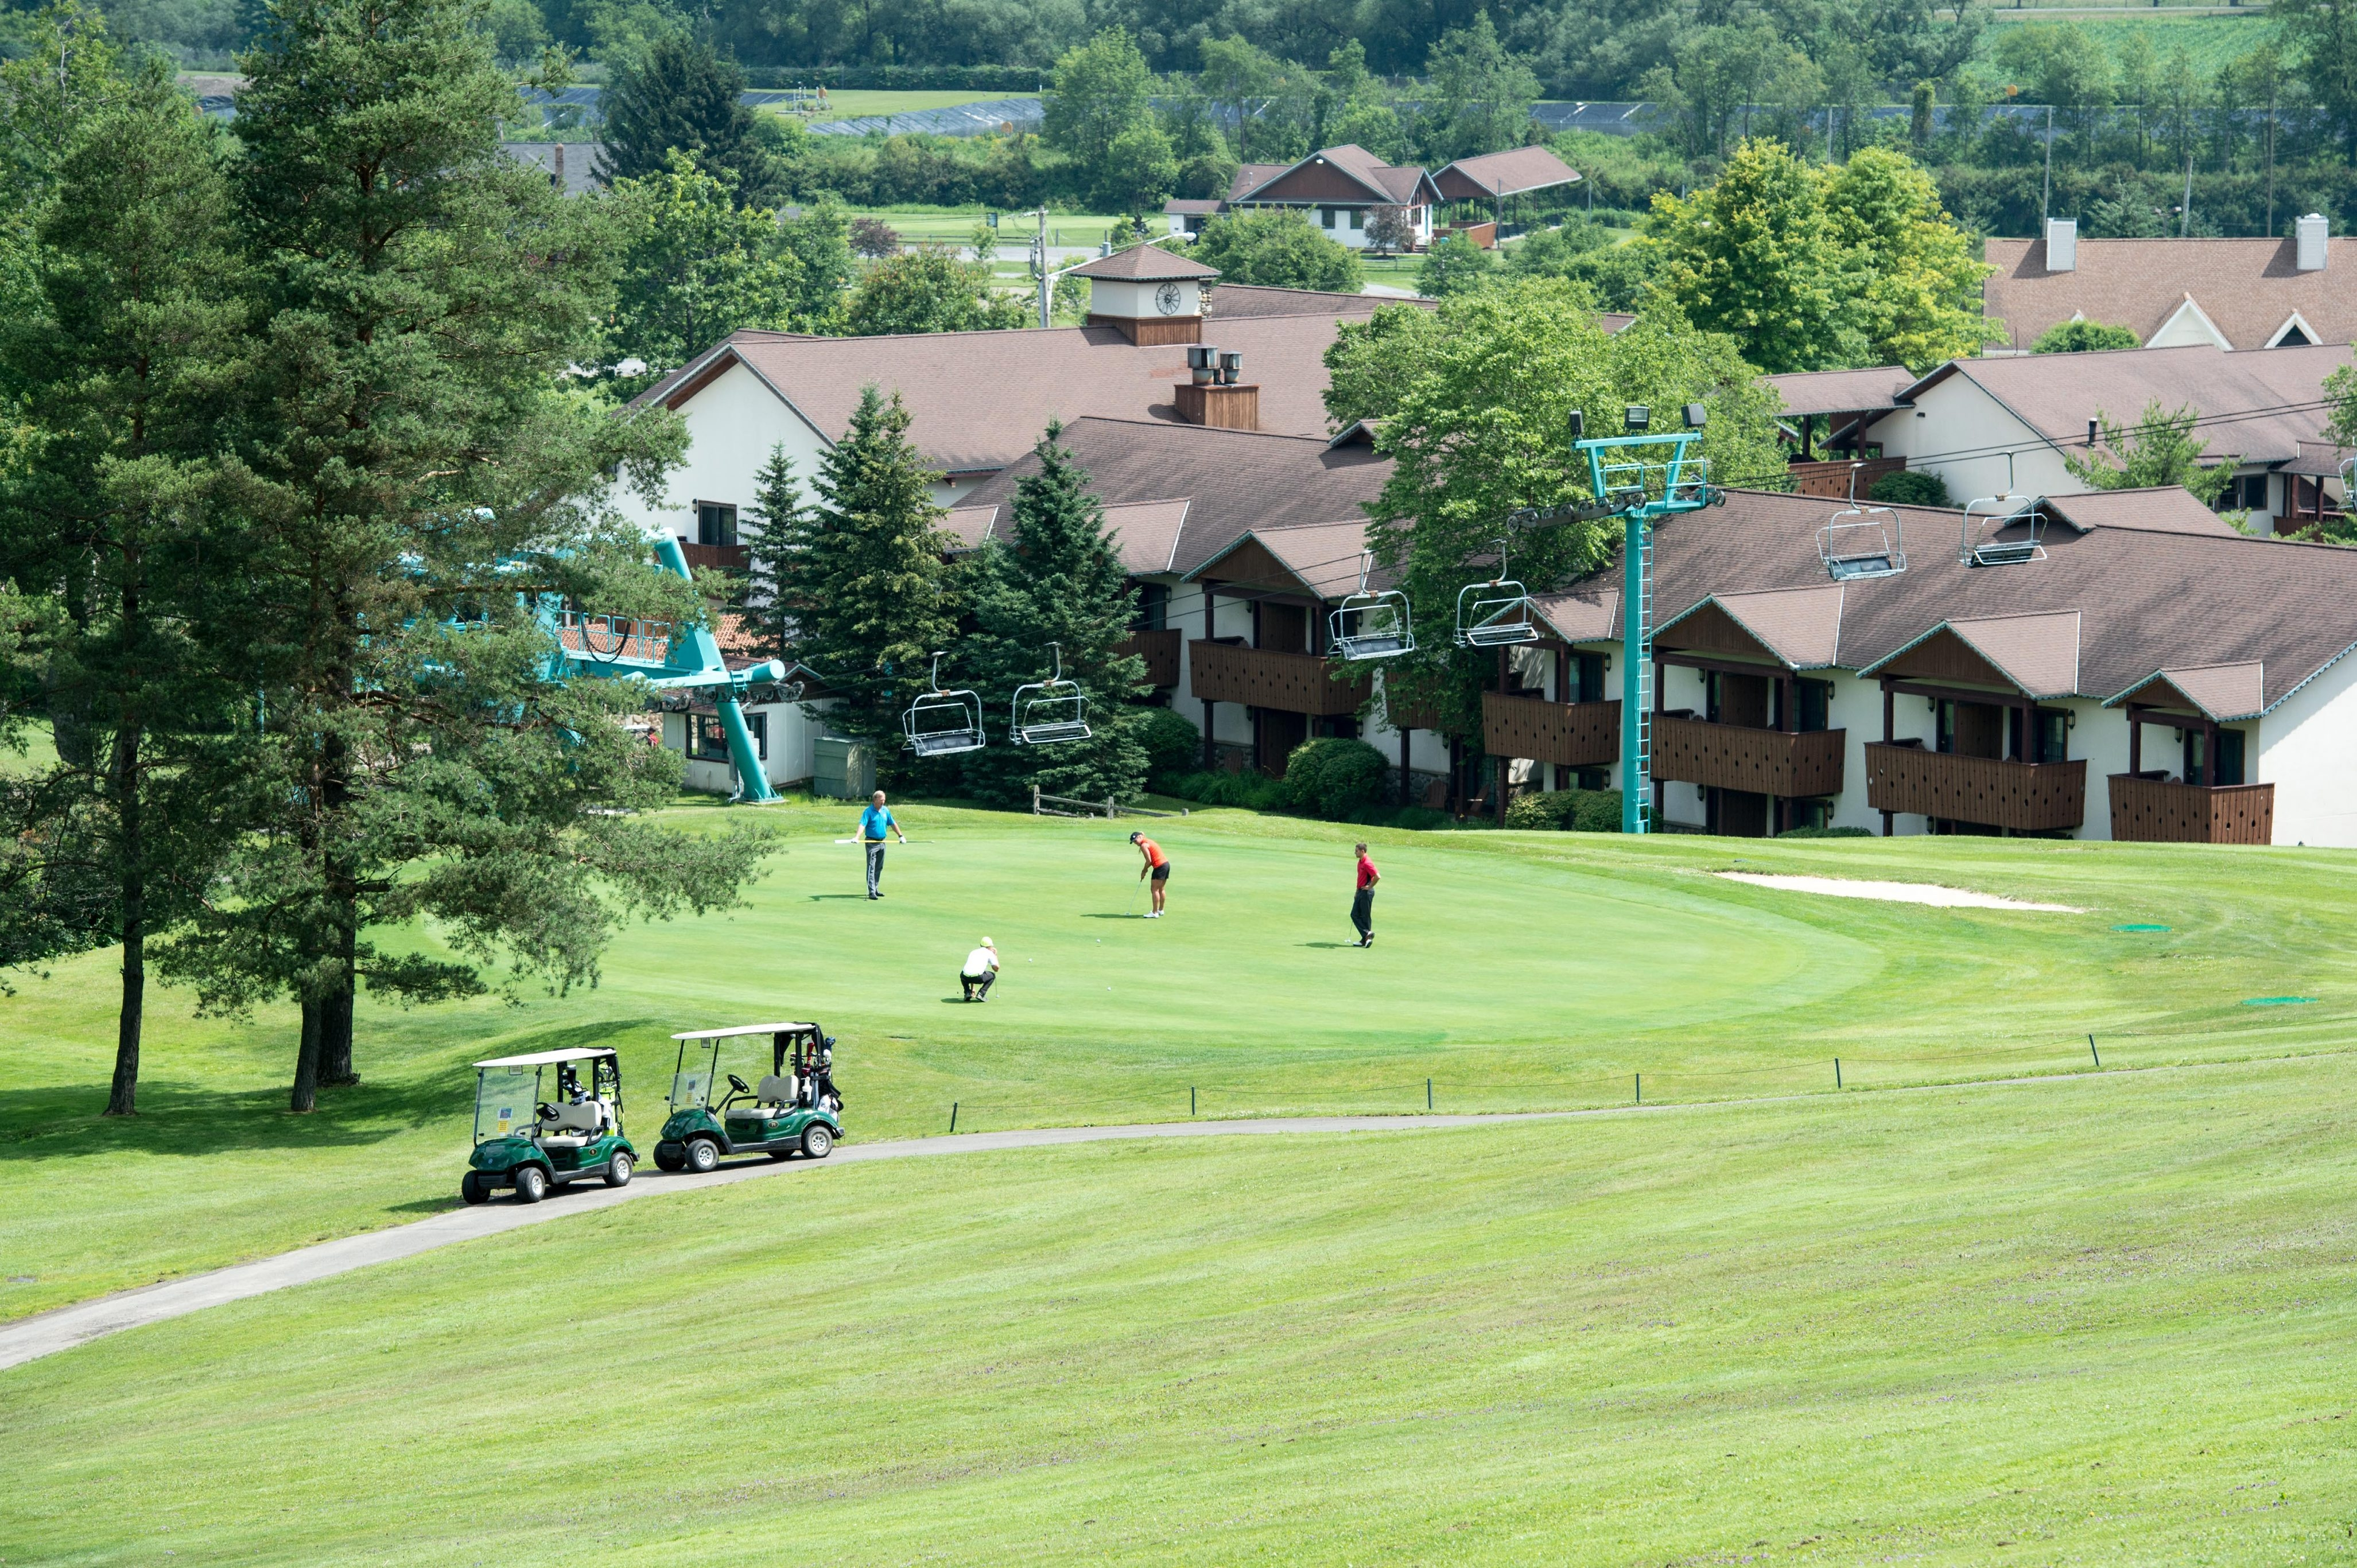 Ellicottville, NY. JUL 10, 2015: Scenes from the Holiday Valley Golf photo shoot.  (c) Craig Melvin/2015